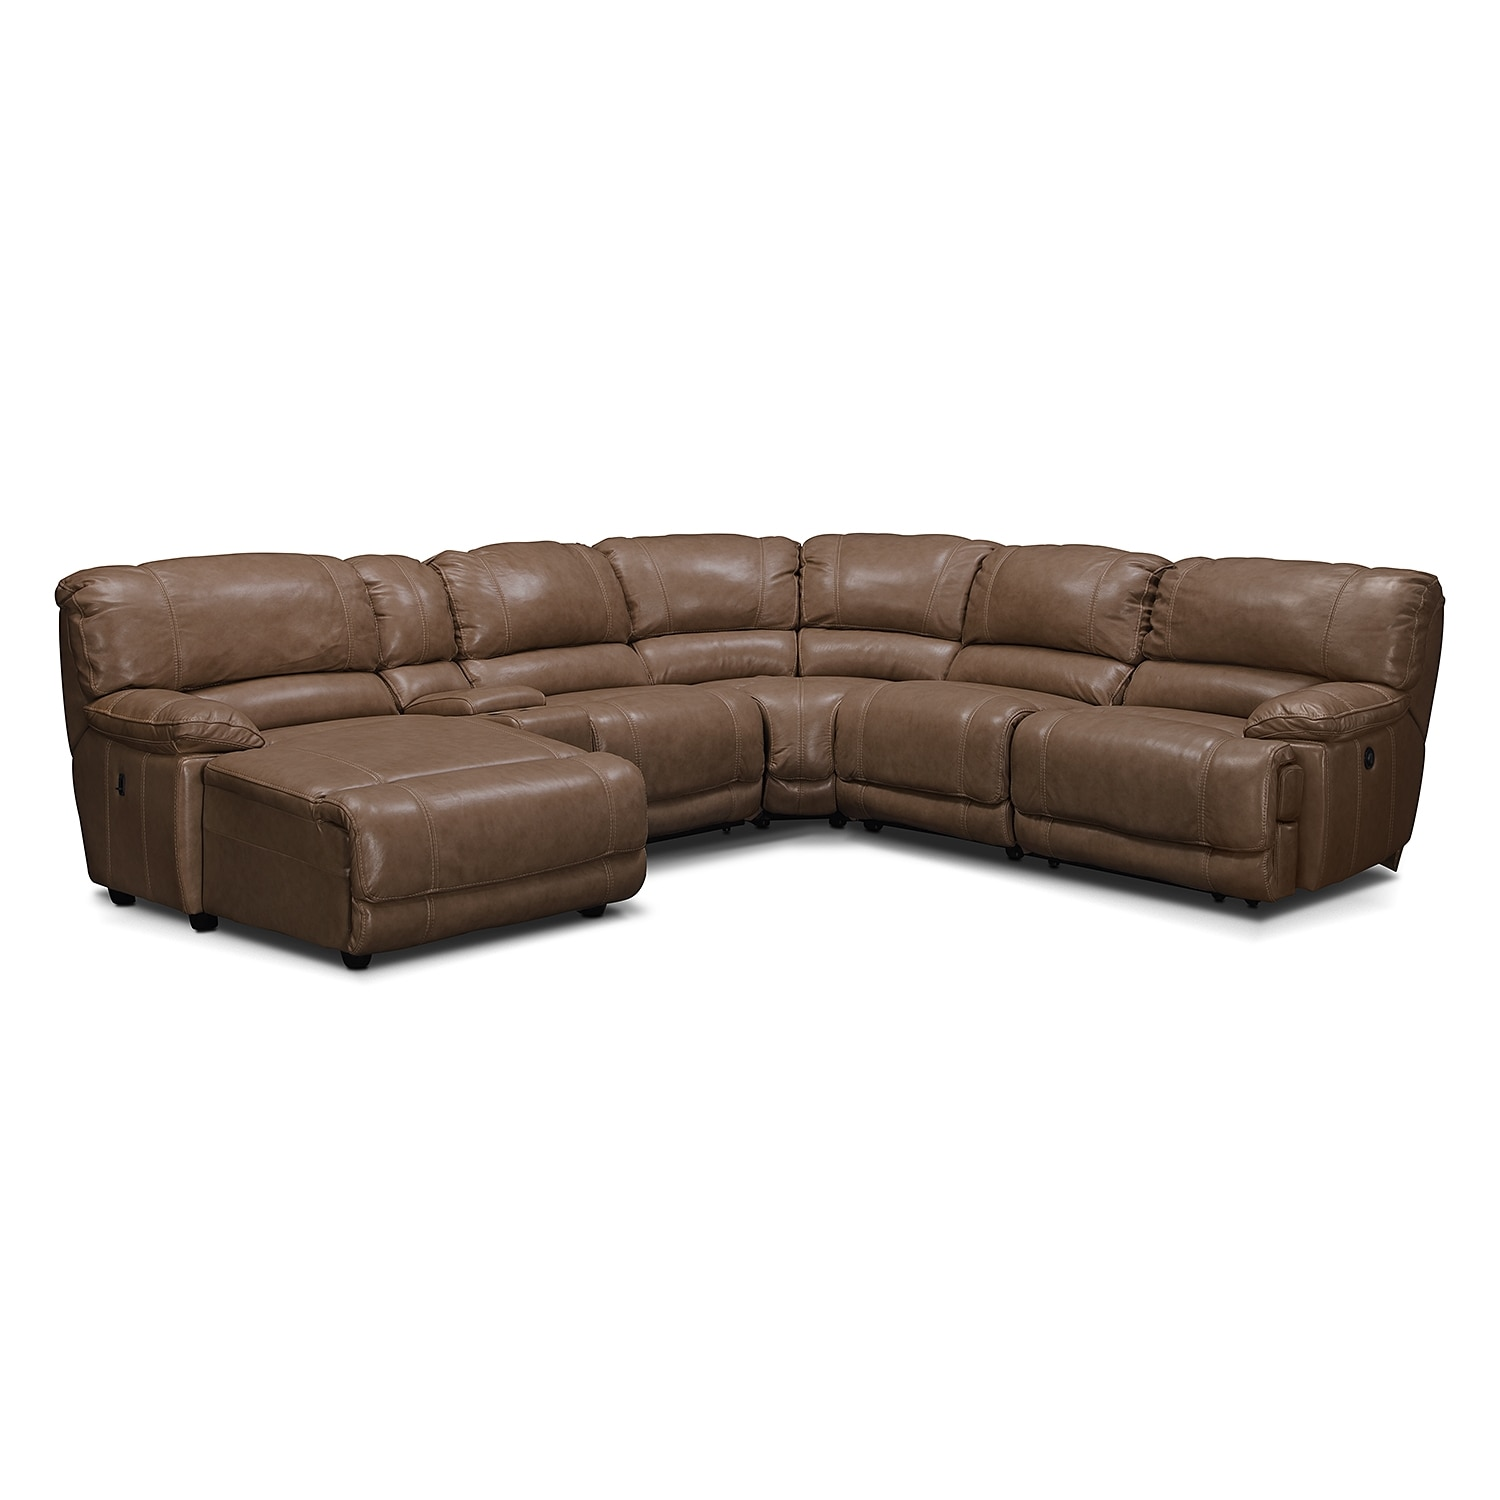 St. Malo 6-Piece Power Reclining Sectional with Left-Facing Chaise - Taupe